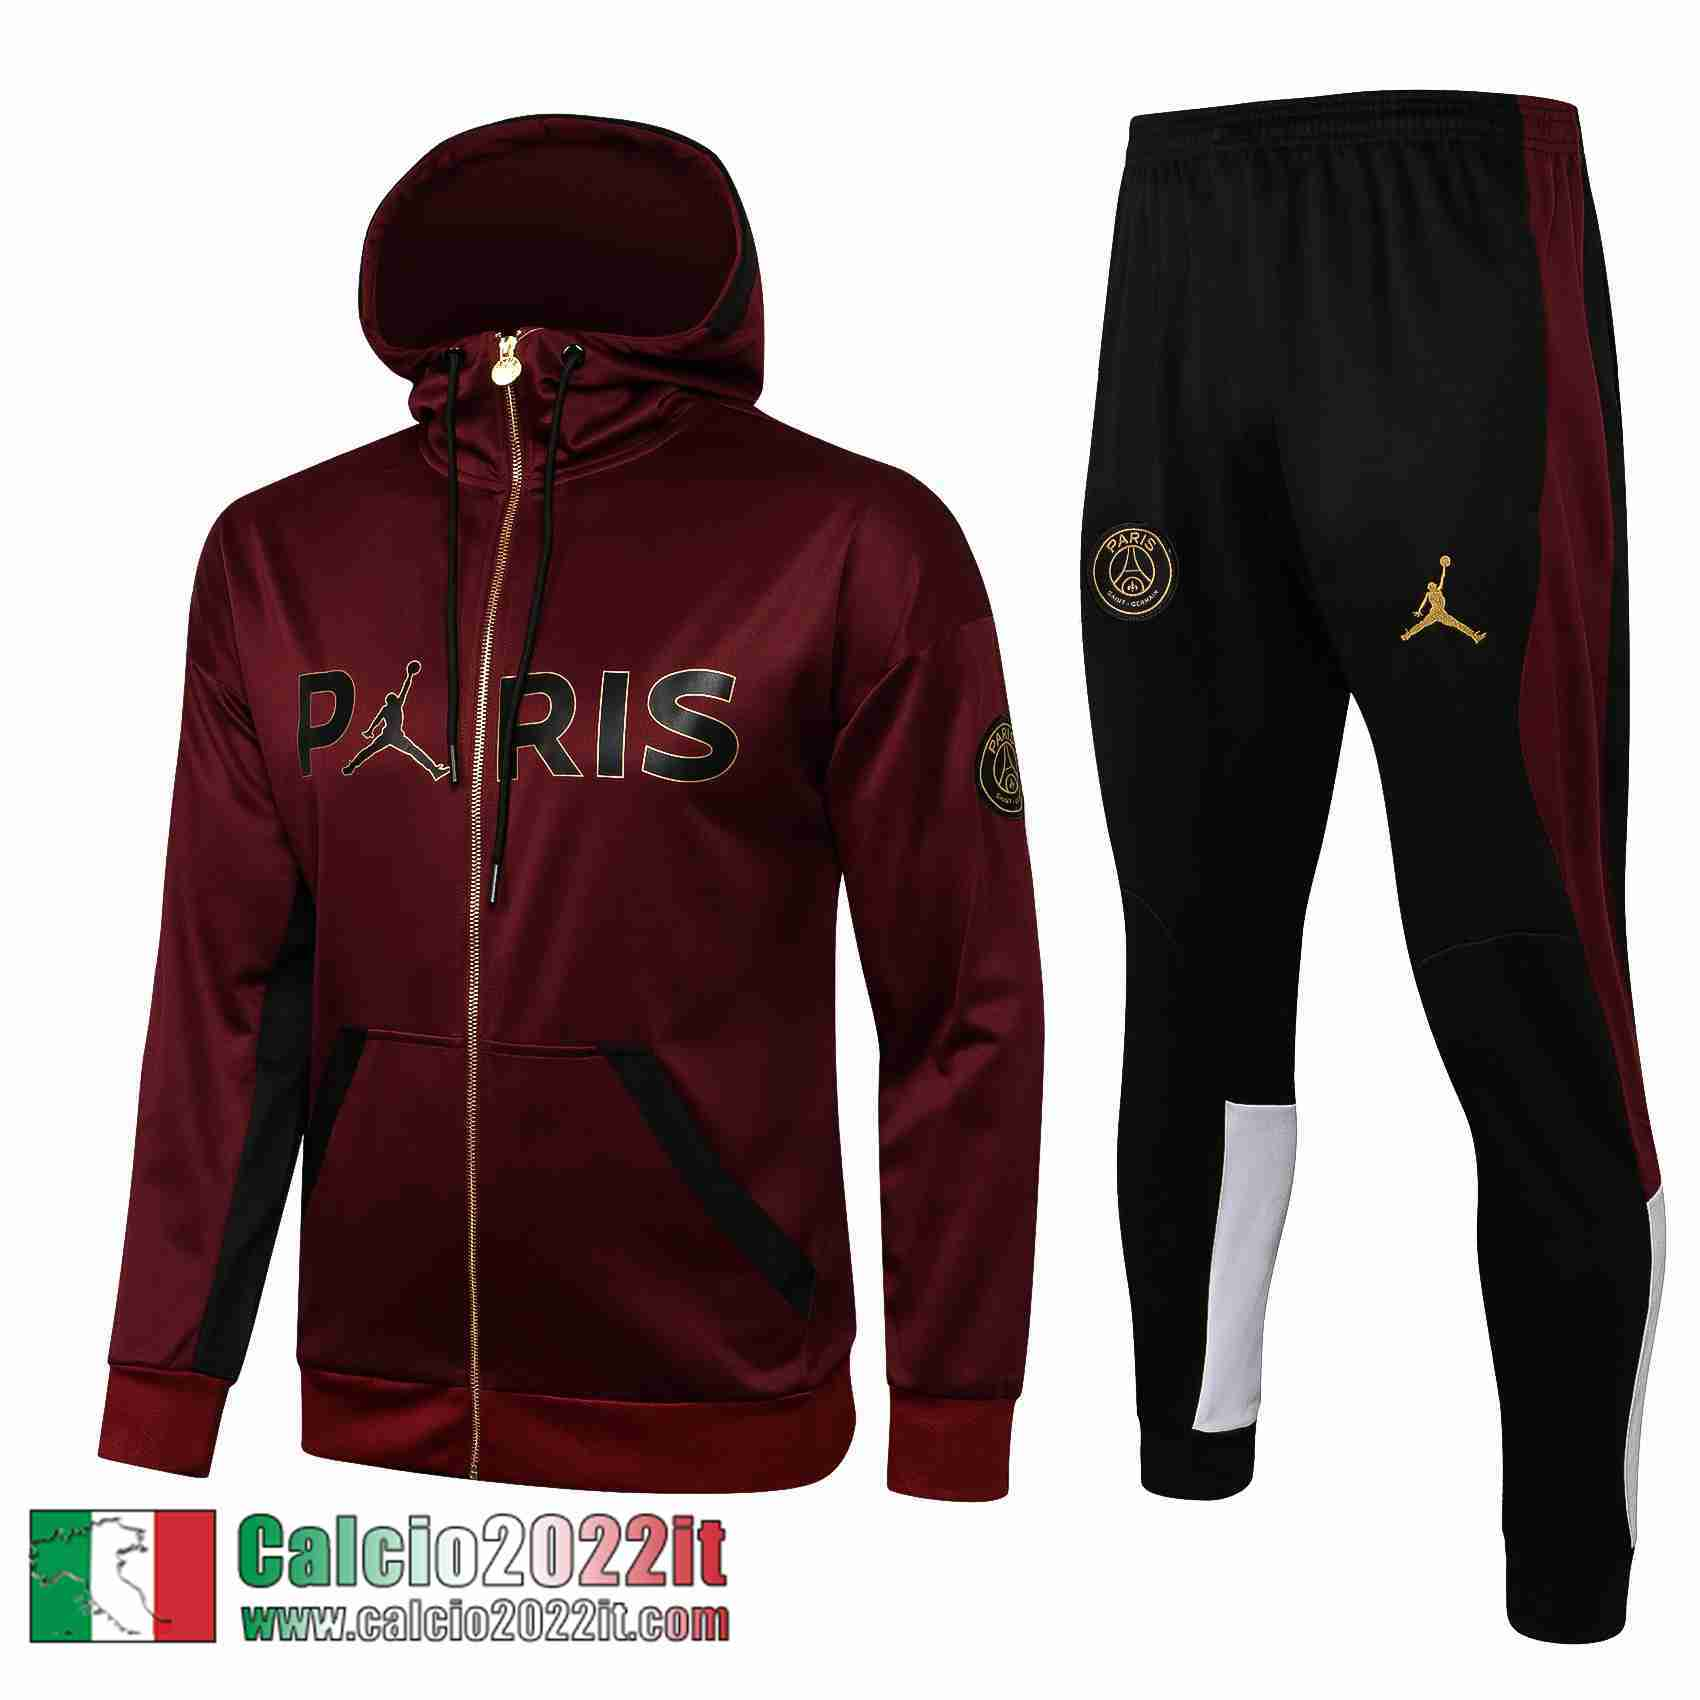 Paris Saint Germain Psg Air Jordan Cappuccio Hoodie Full-Zip Giacca Scarlatto Jk33 2021 2022